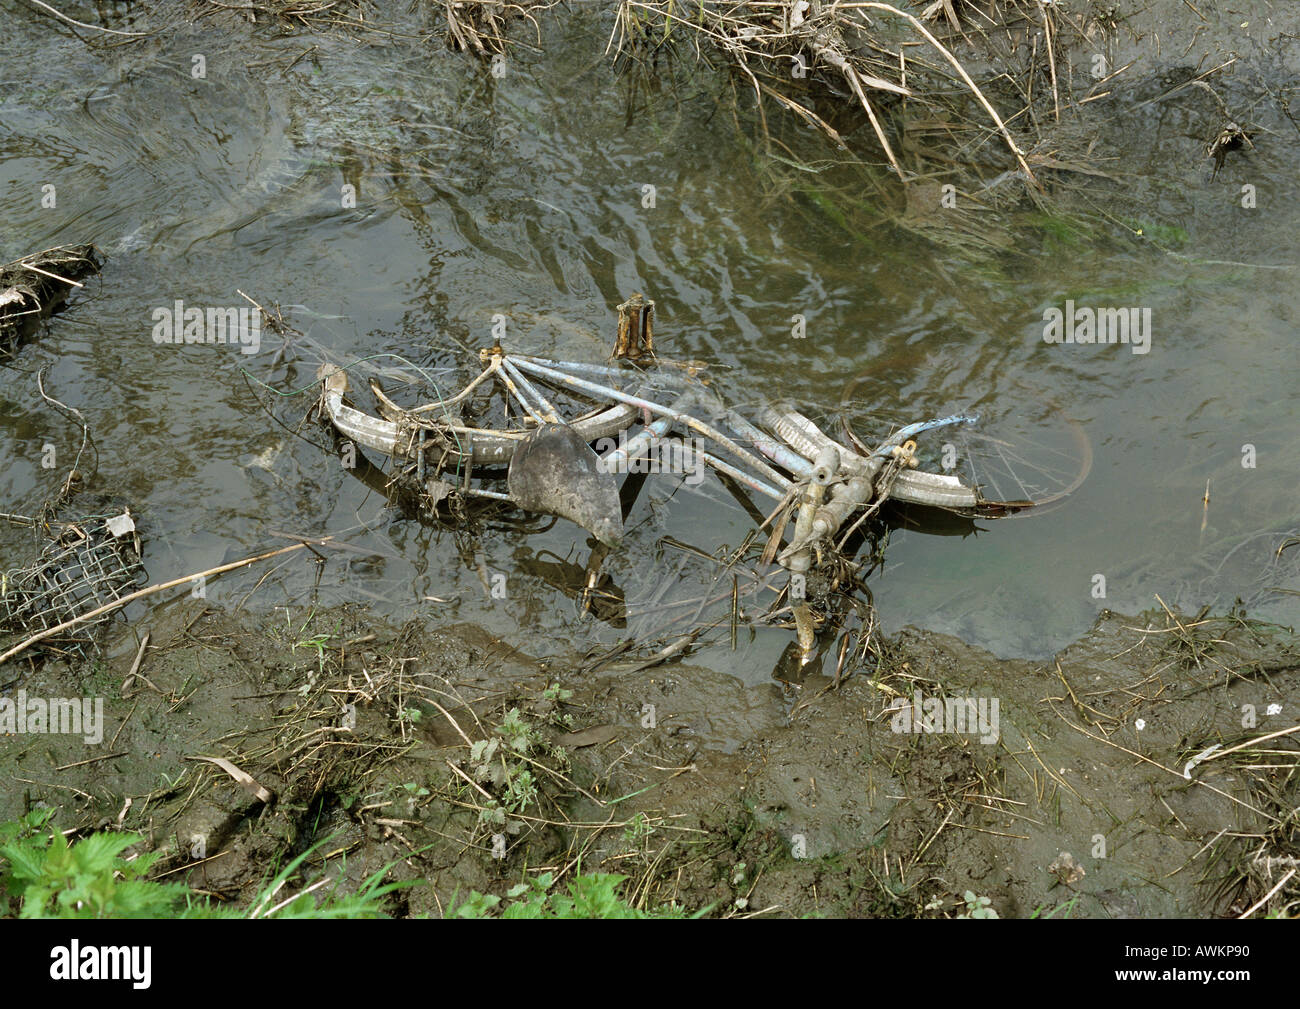 Rusty bicycle abandoned in stream - Stock Image